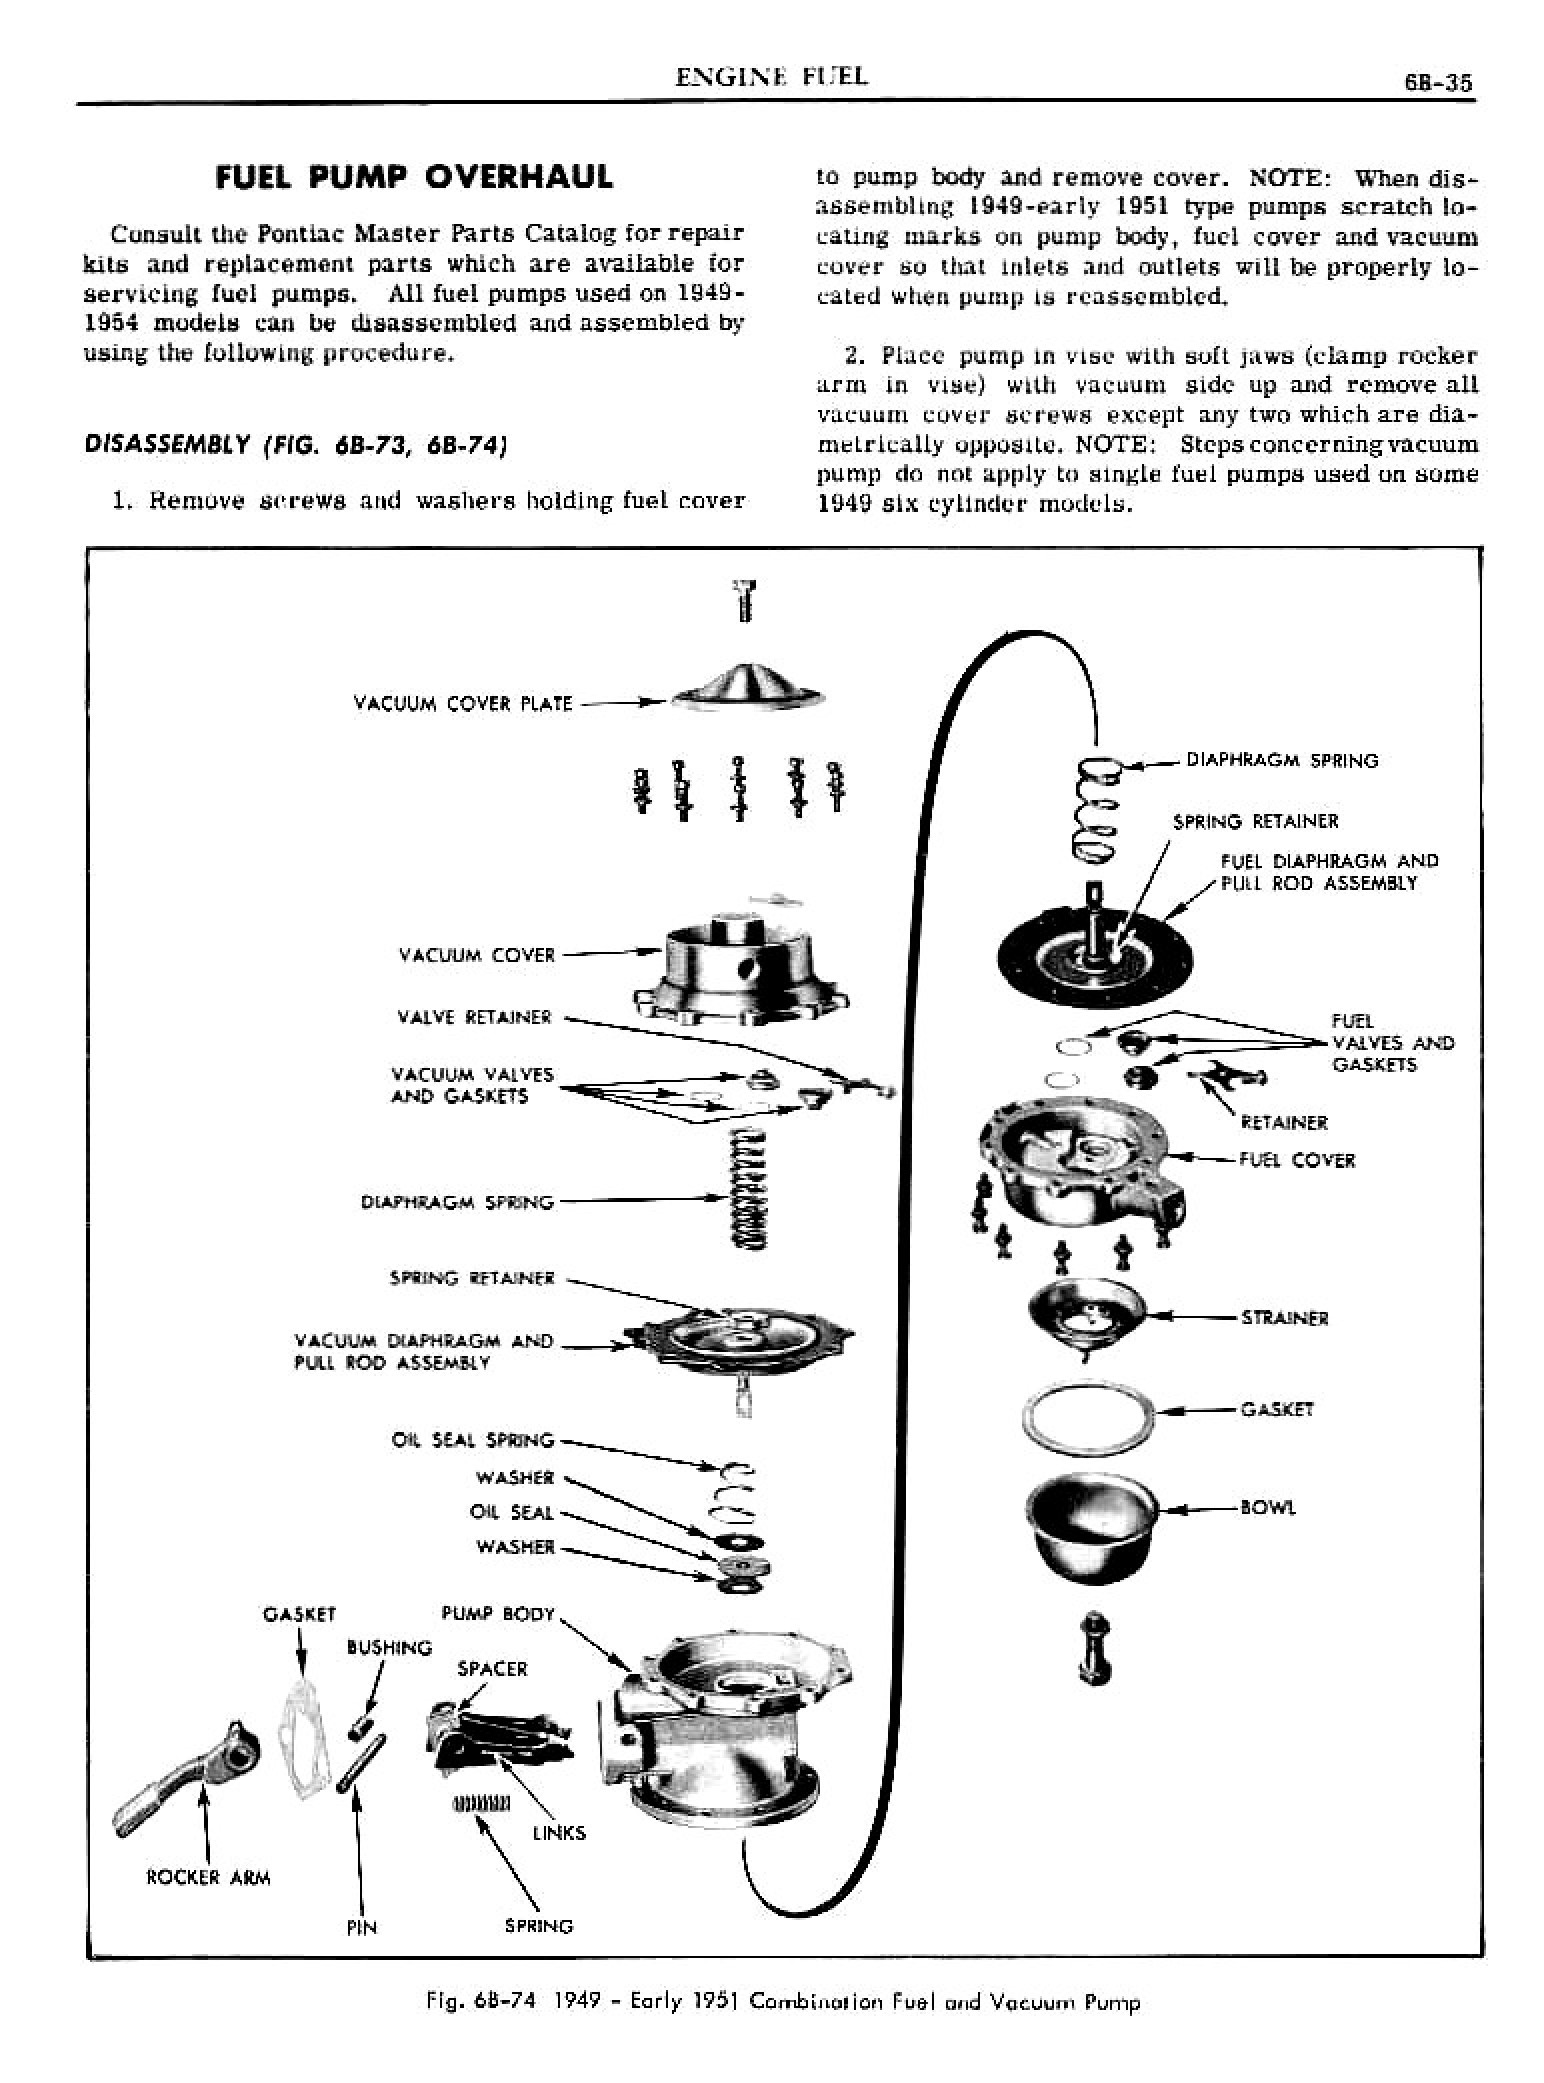 1949 Pontiac Shop Manual- Engine Fuel Page 35 of 42